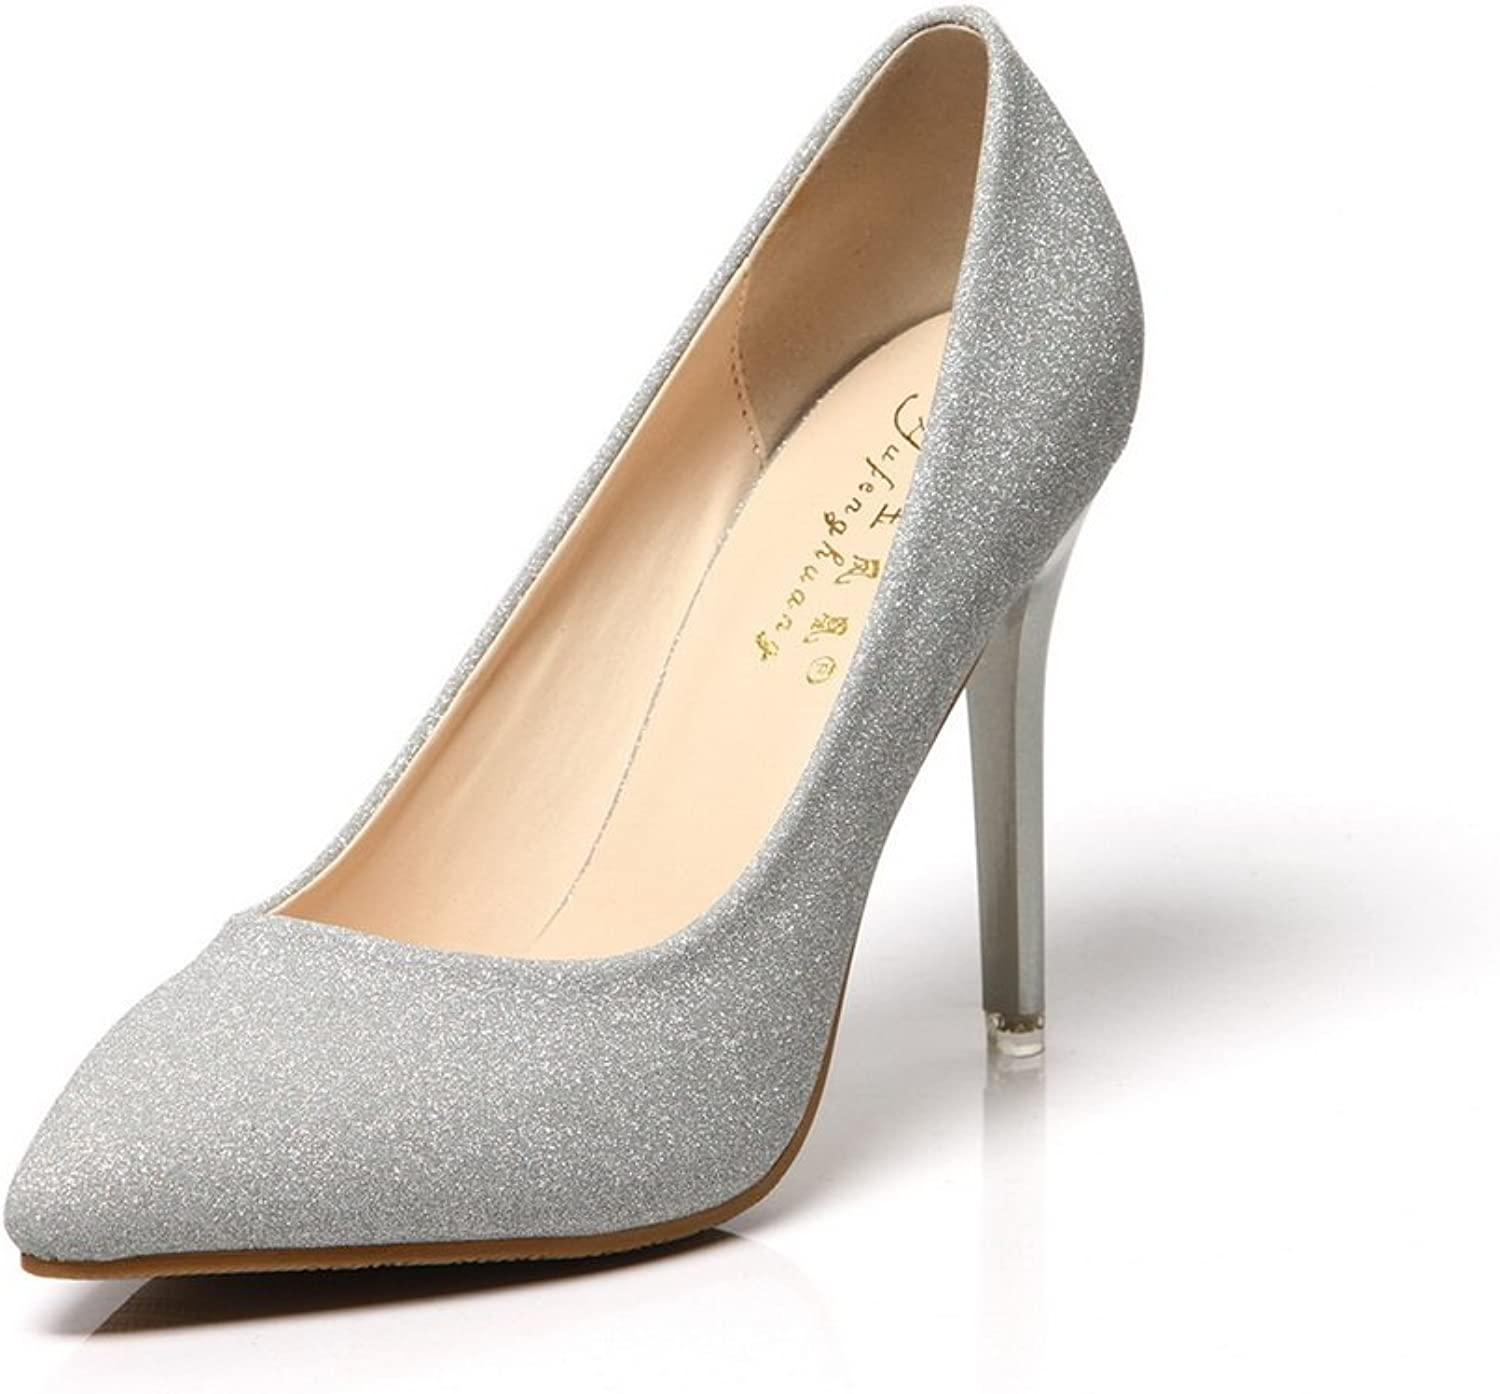 1TO9 Womens No-Closure Spikes Stilettos Pointed-Toe Silver Sequin Pumps shoes - 5.5 B(M) US